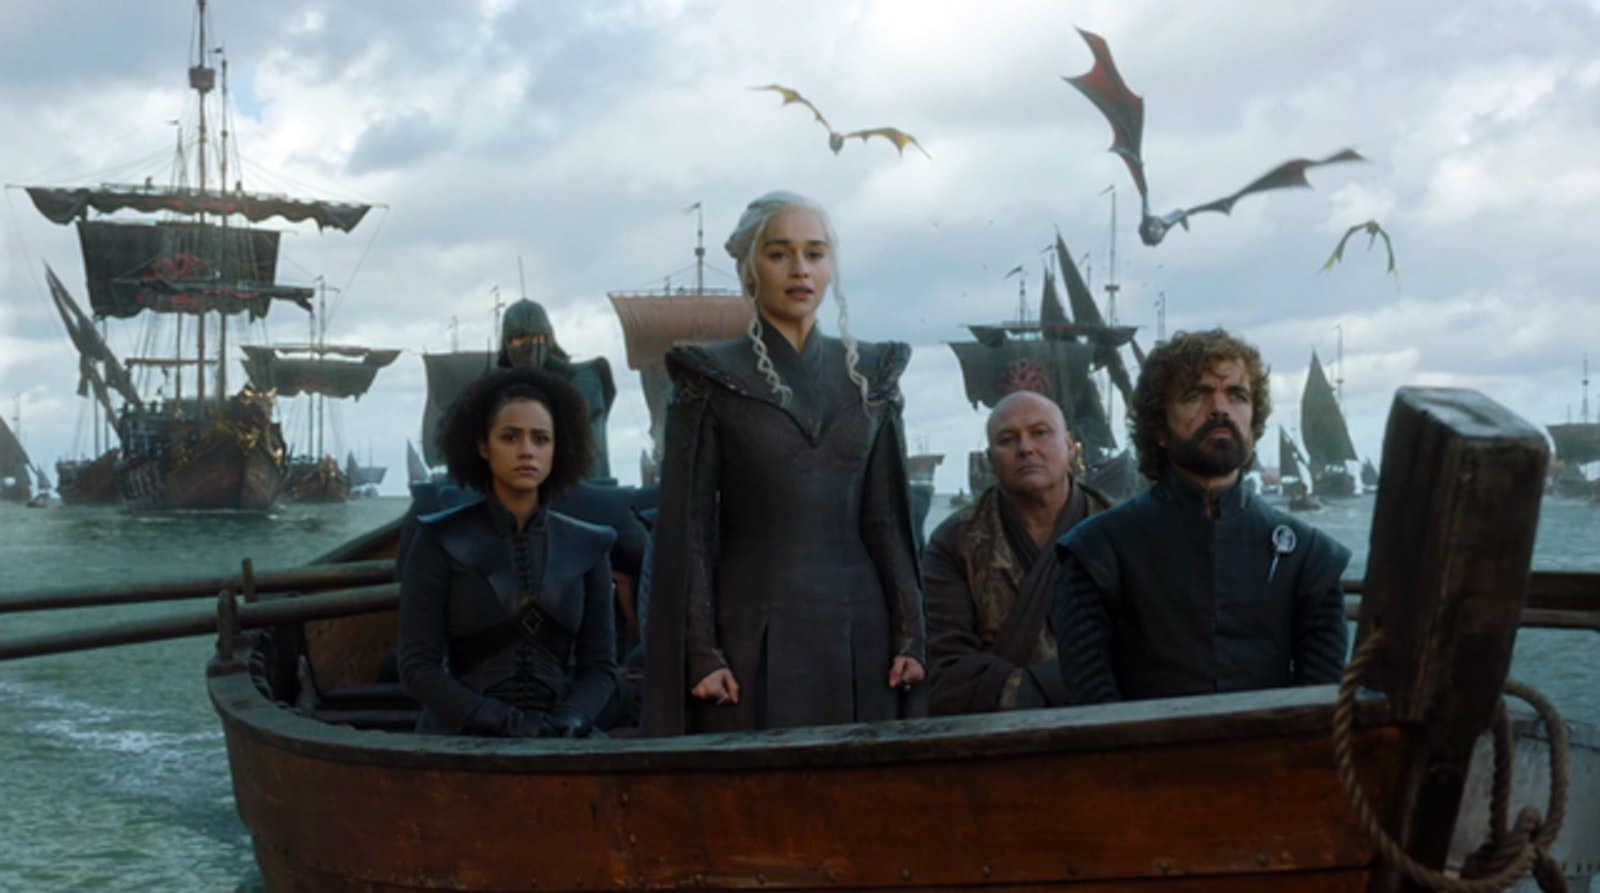 A scene from HBO's Game of Thrones. Photo by HBO.